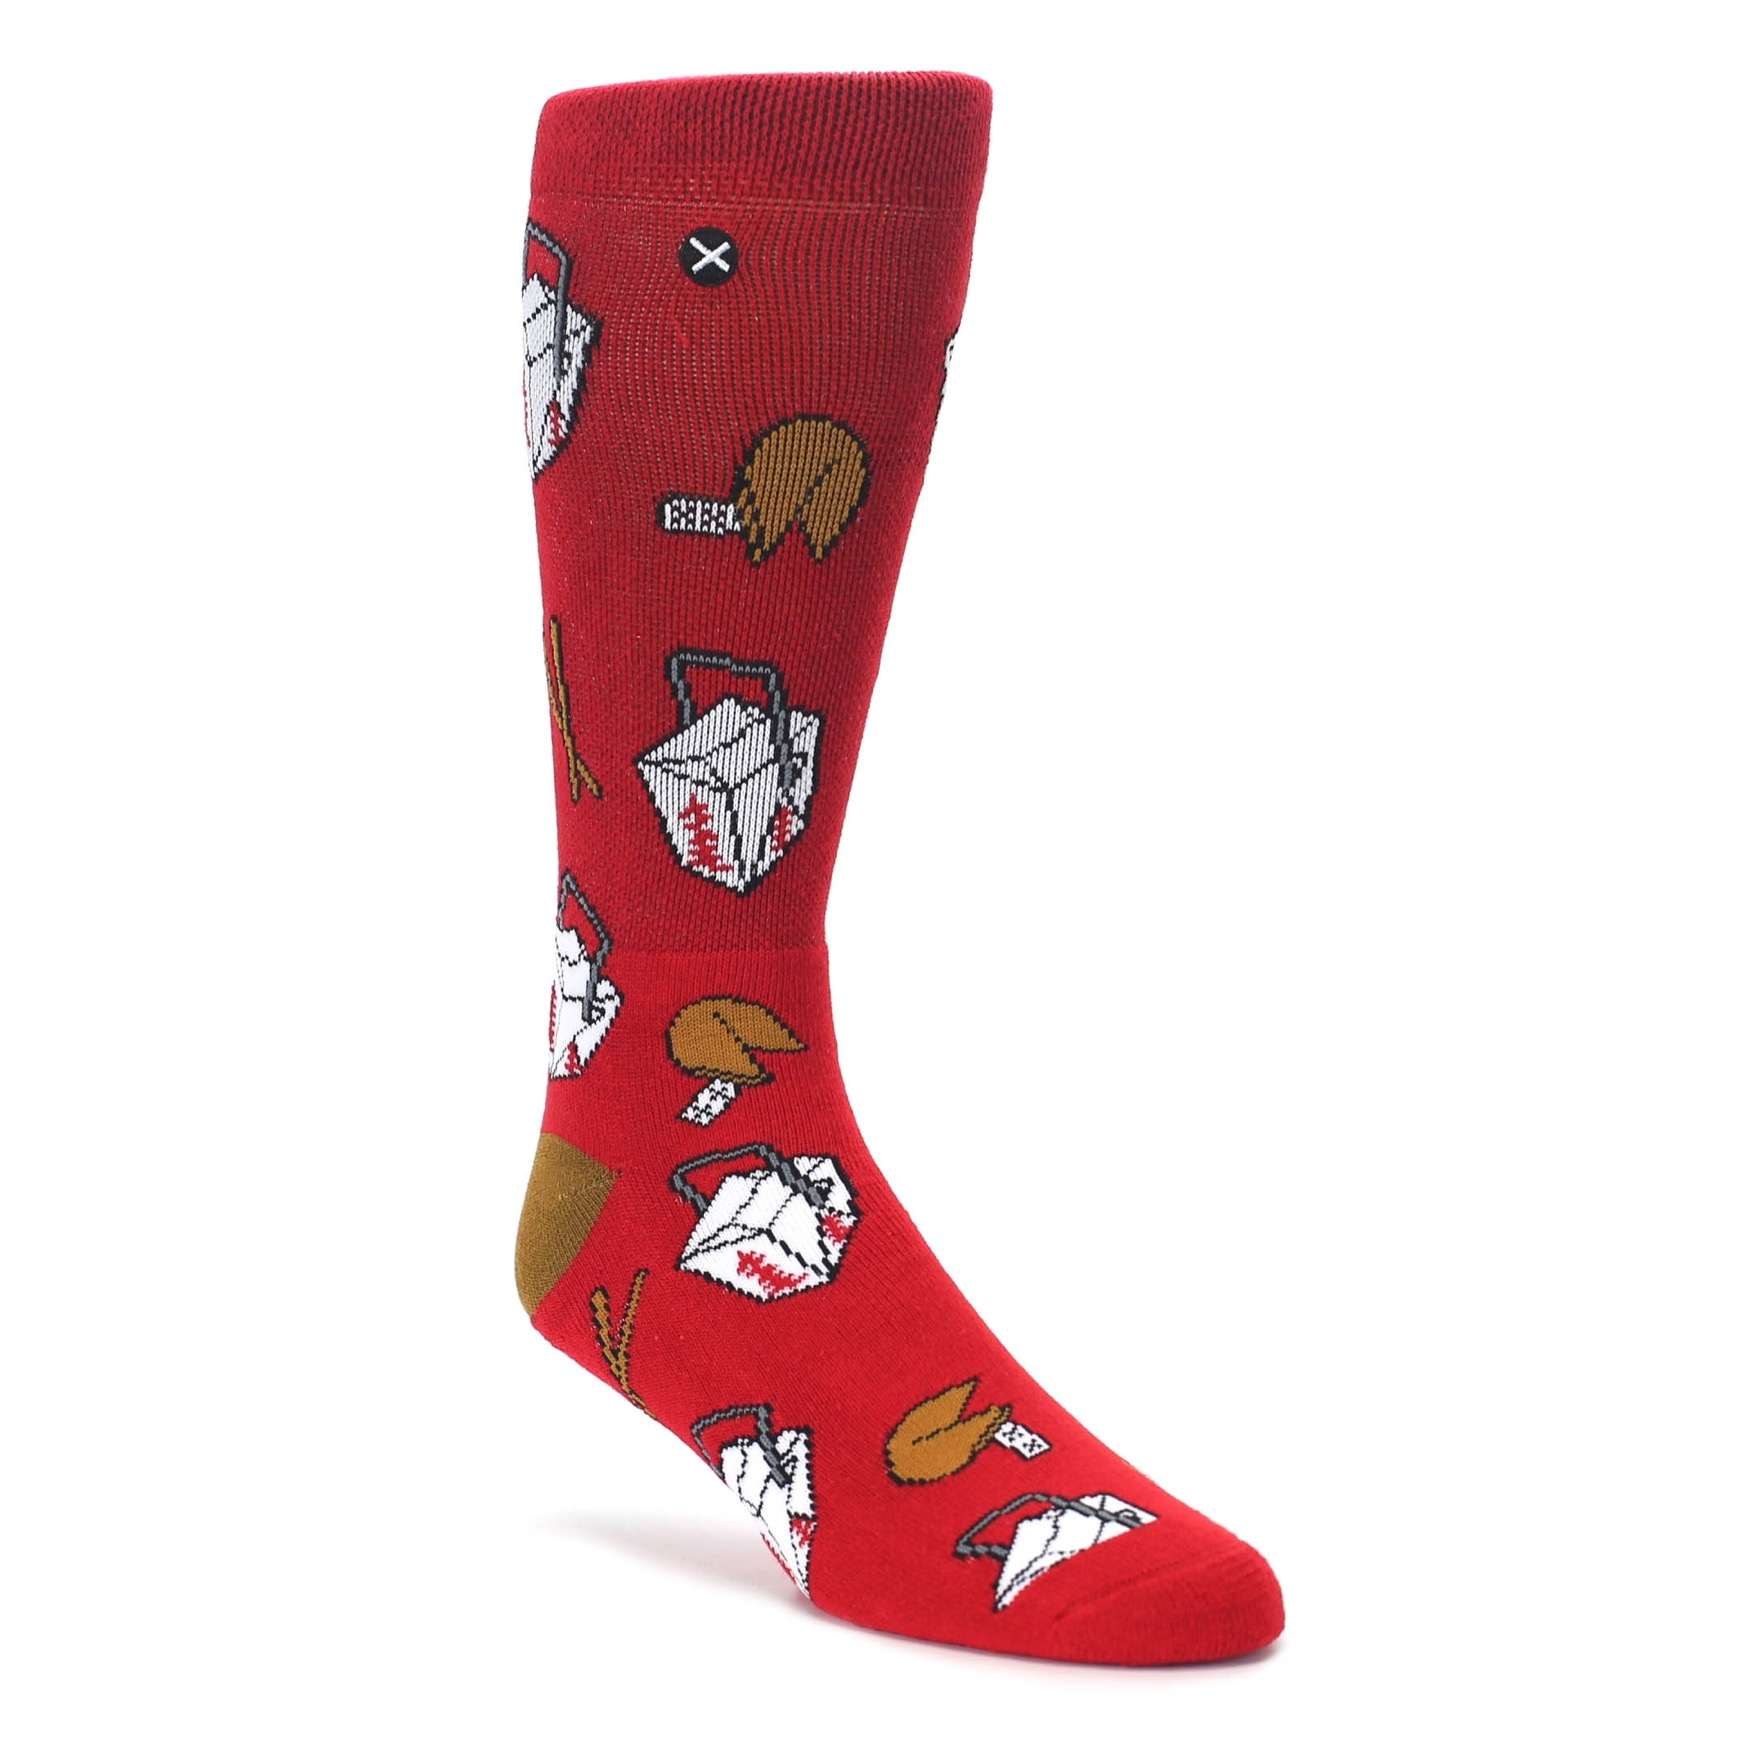 fad93711acc Red Chinese Take Out Food Men s Casual Socks - Odd Sox